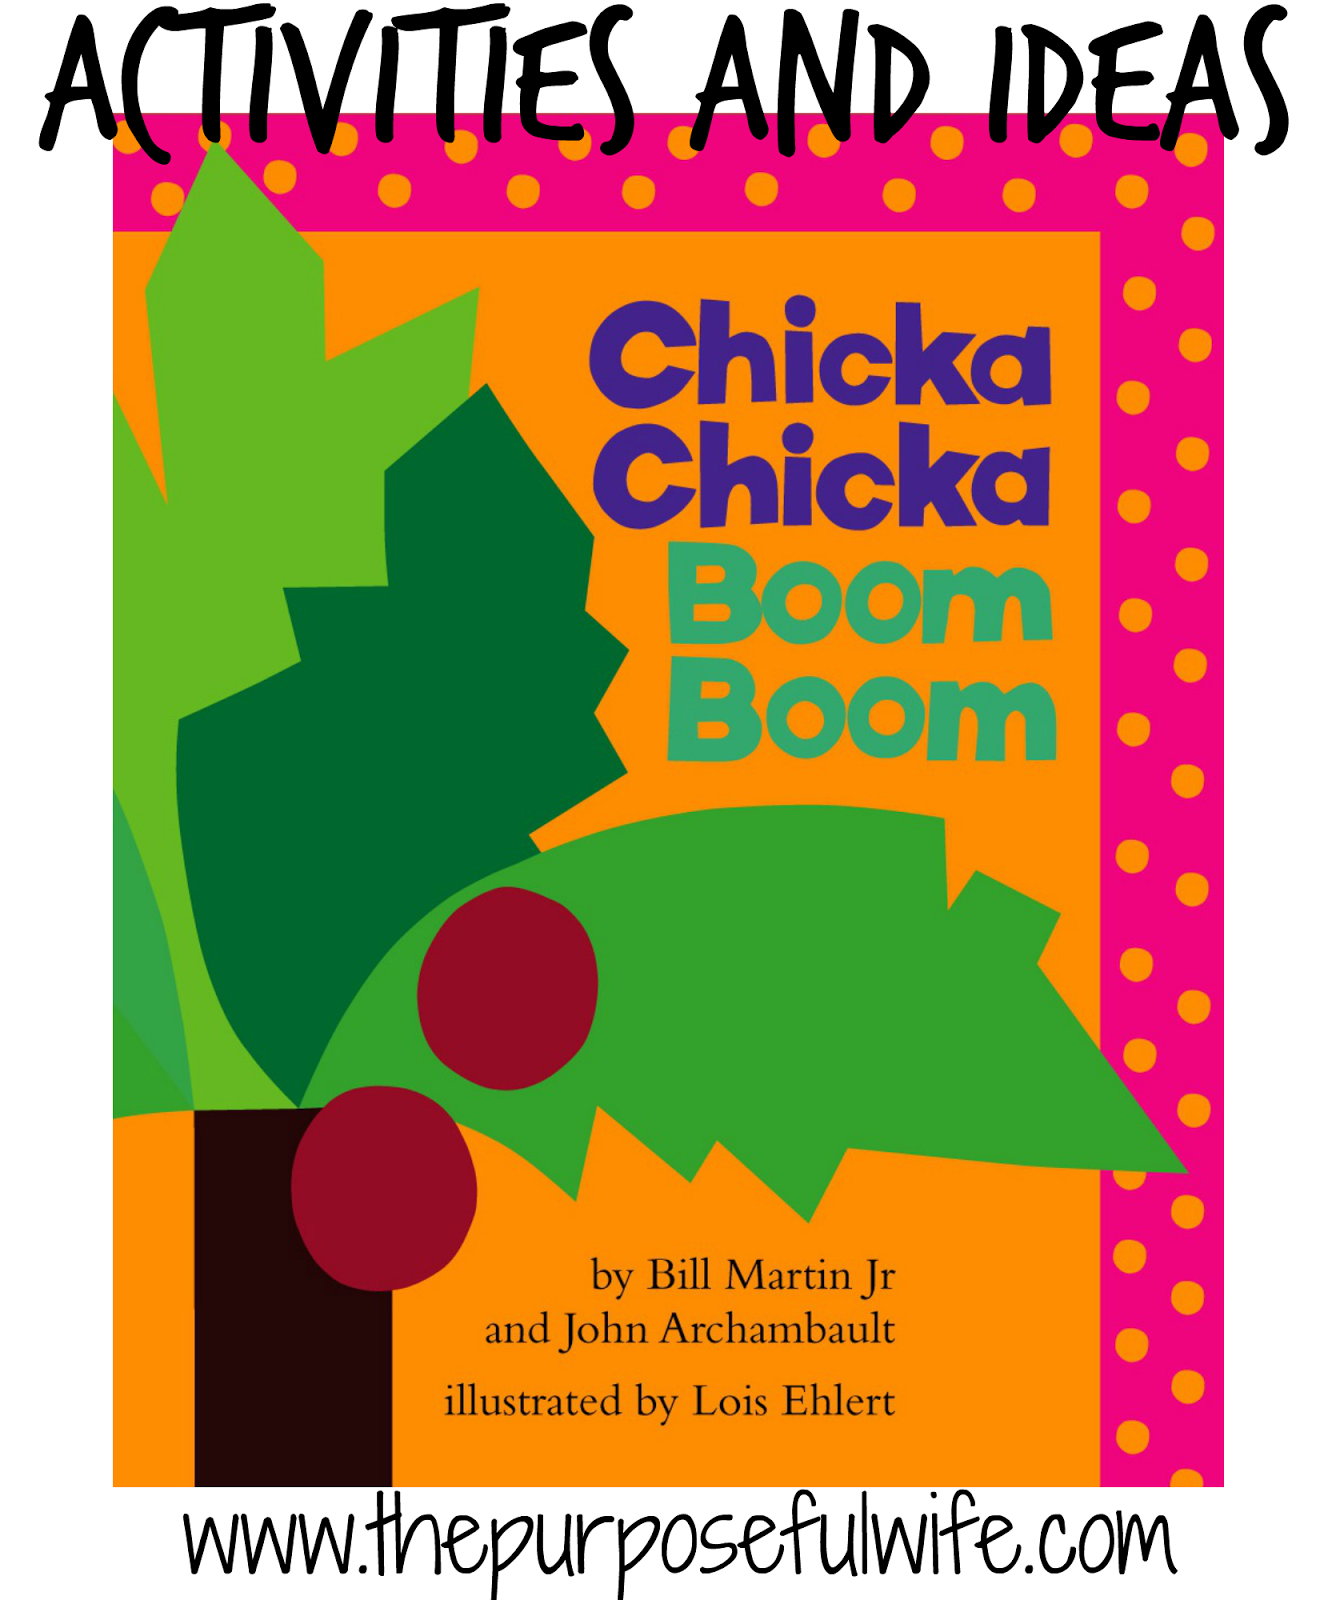 The purposeful wife october 2014 chicka chicka boom boom has got to be the most fun book about letters the rhythmic beat of the language the colorful cut out work by lois ehlert madrichimfo Images